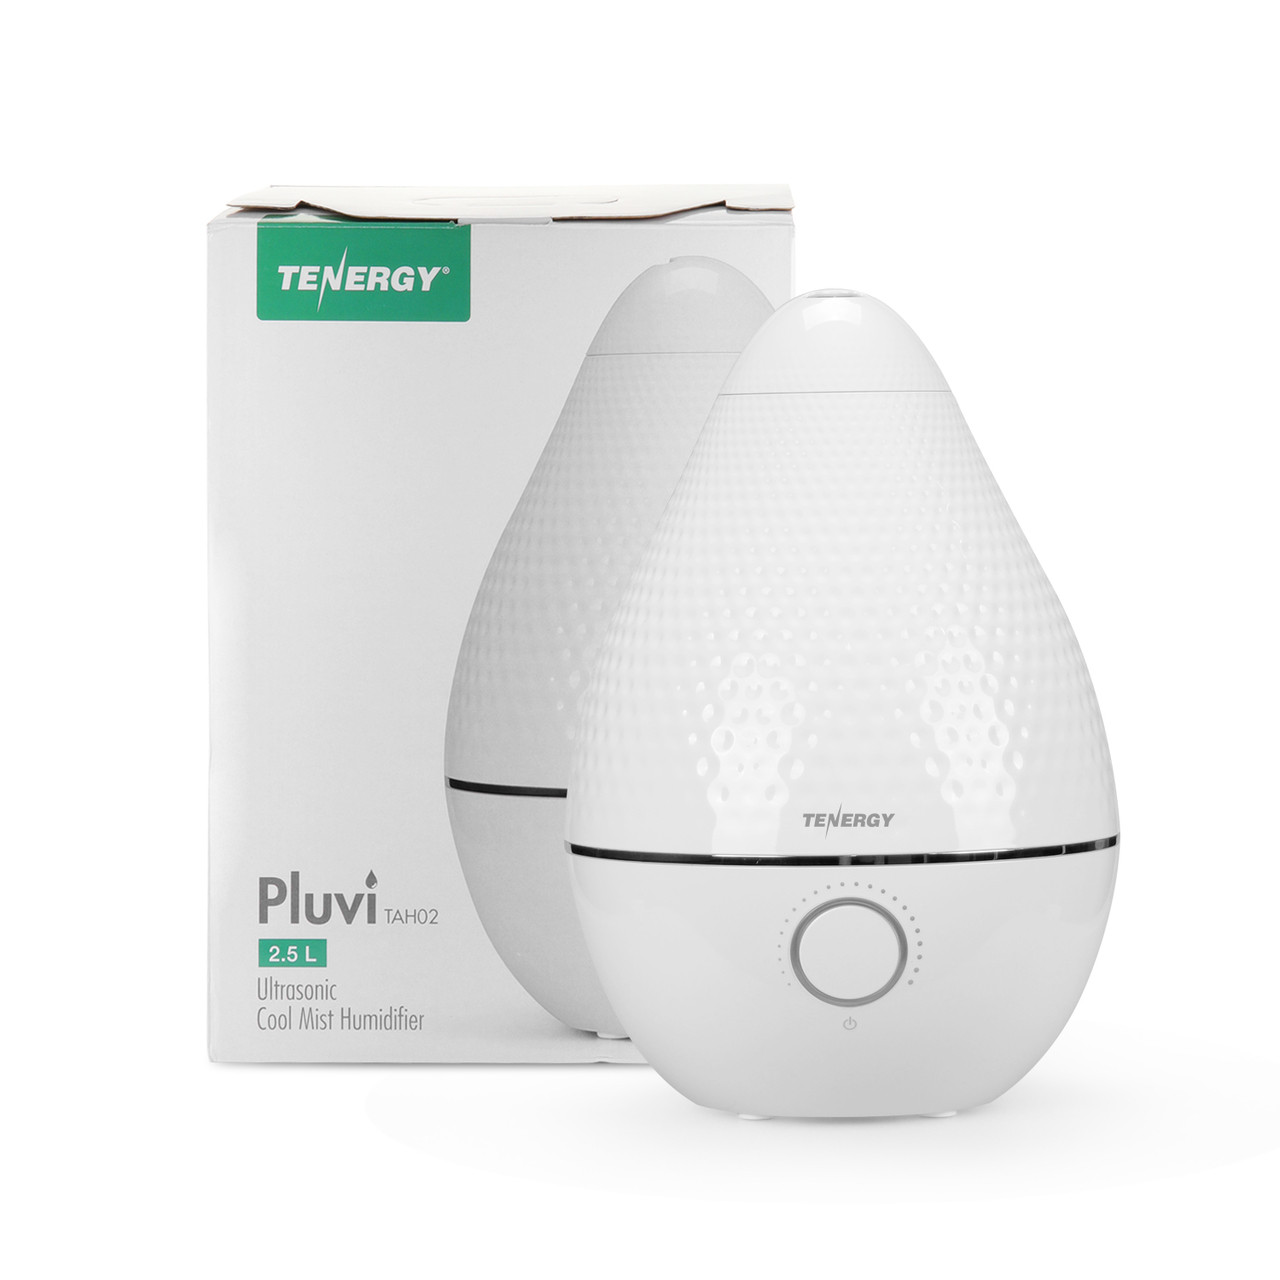 2.5L Pluvi Ultrasonic Humidifier